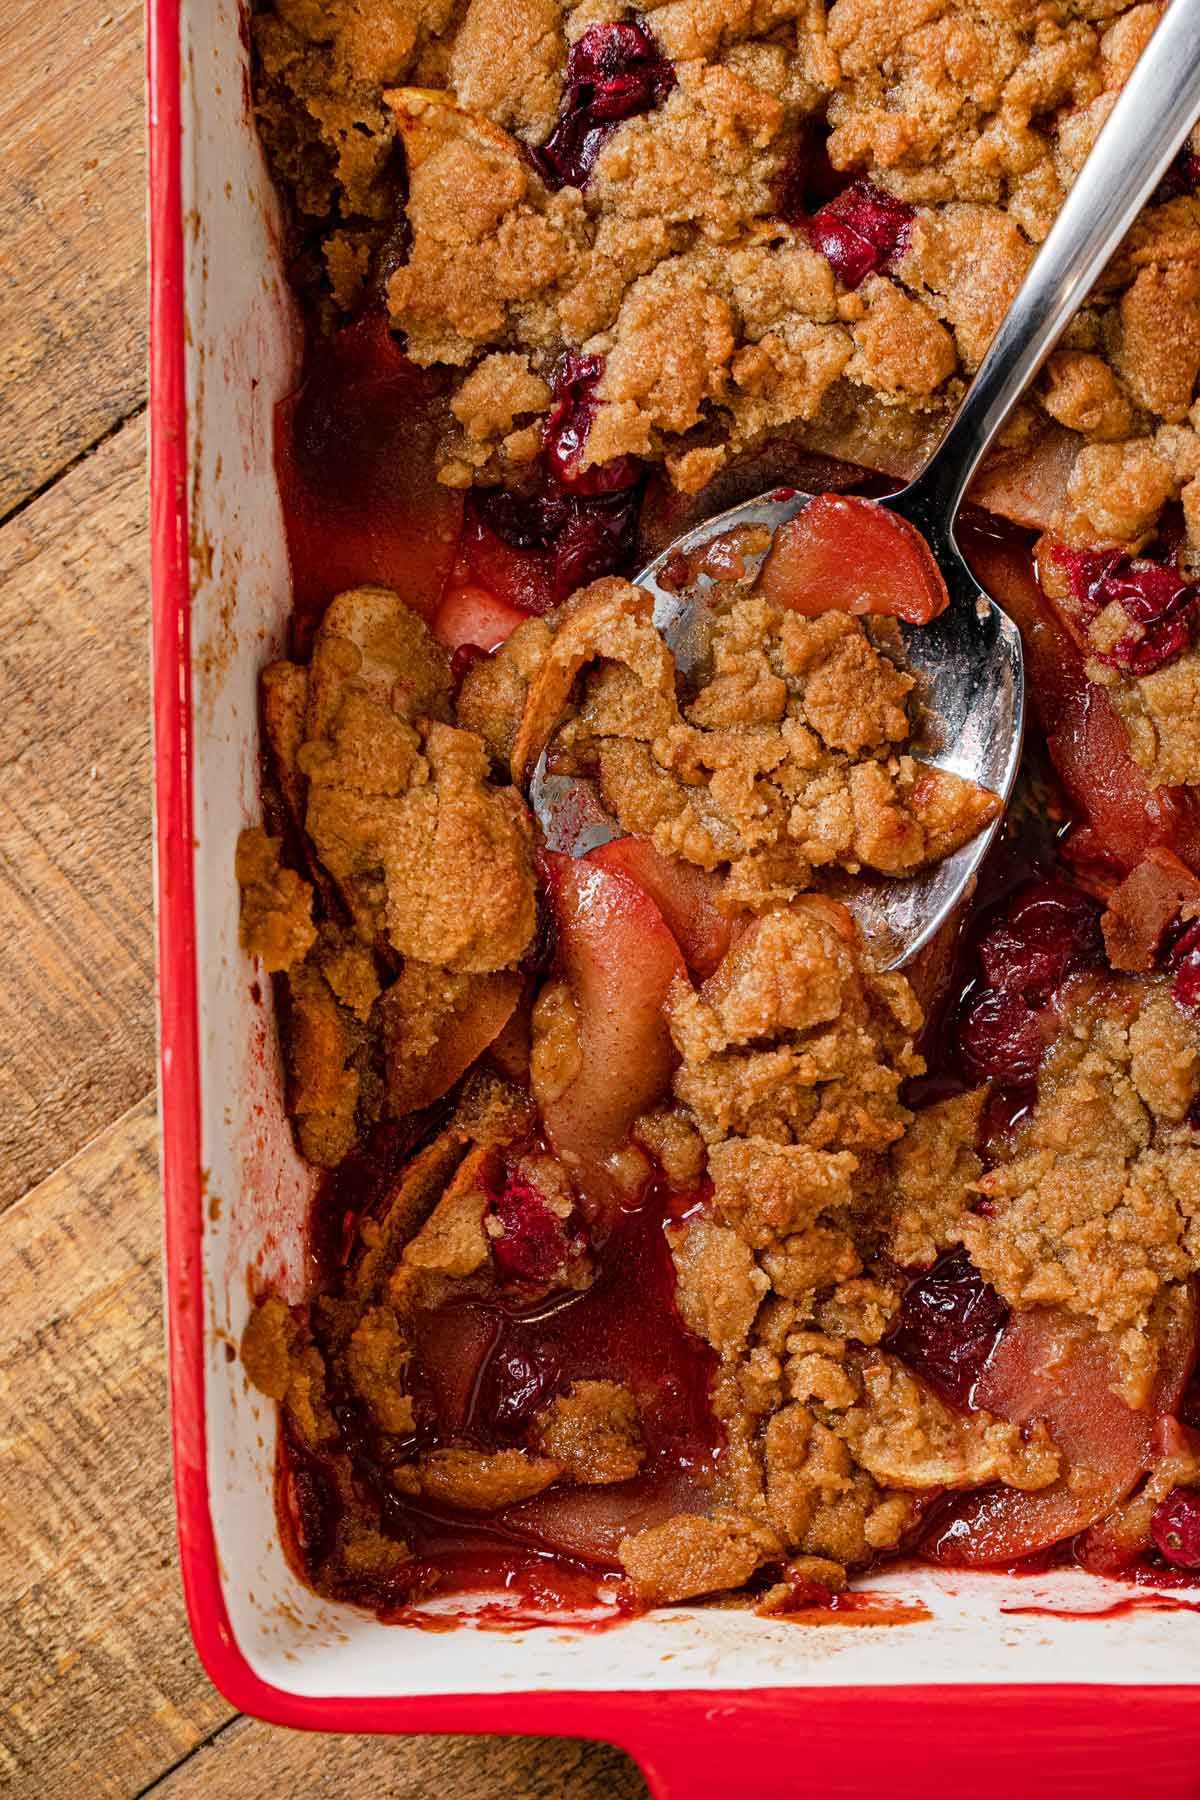 Apple Cranberry Crisp in baking dish with spoon